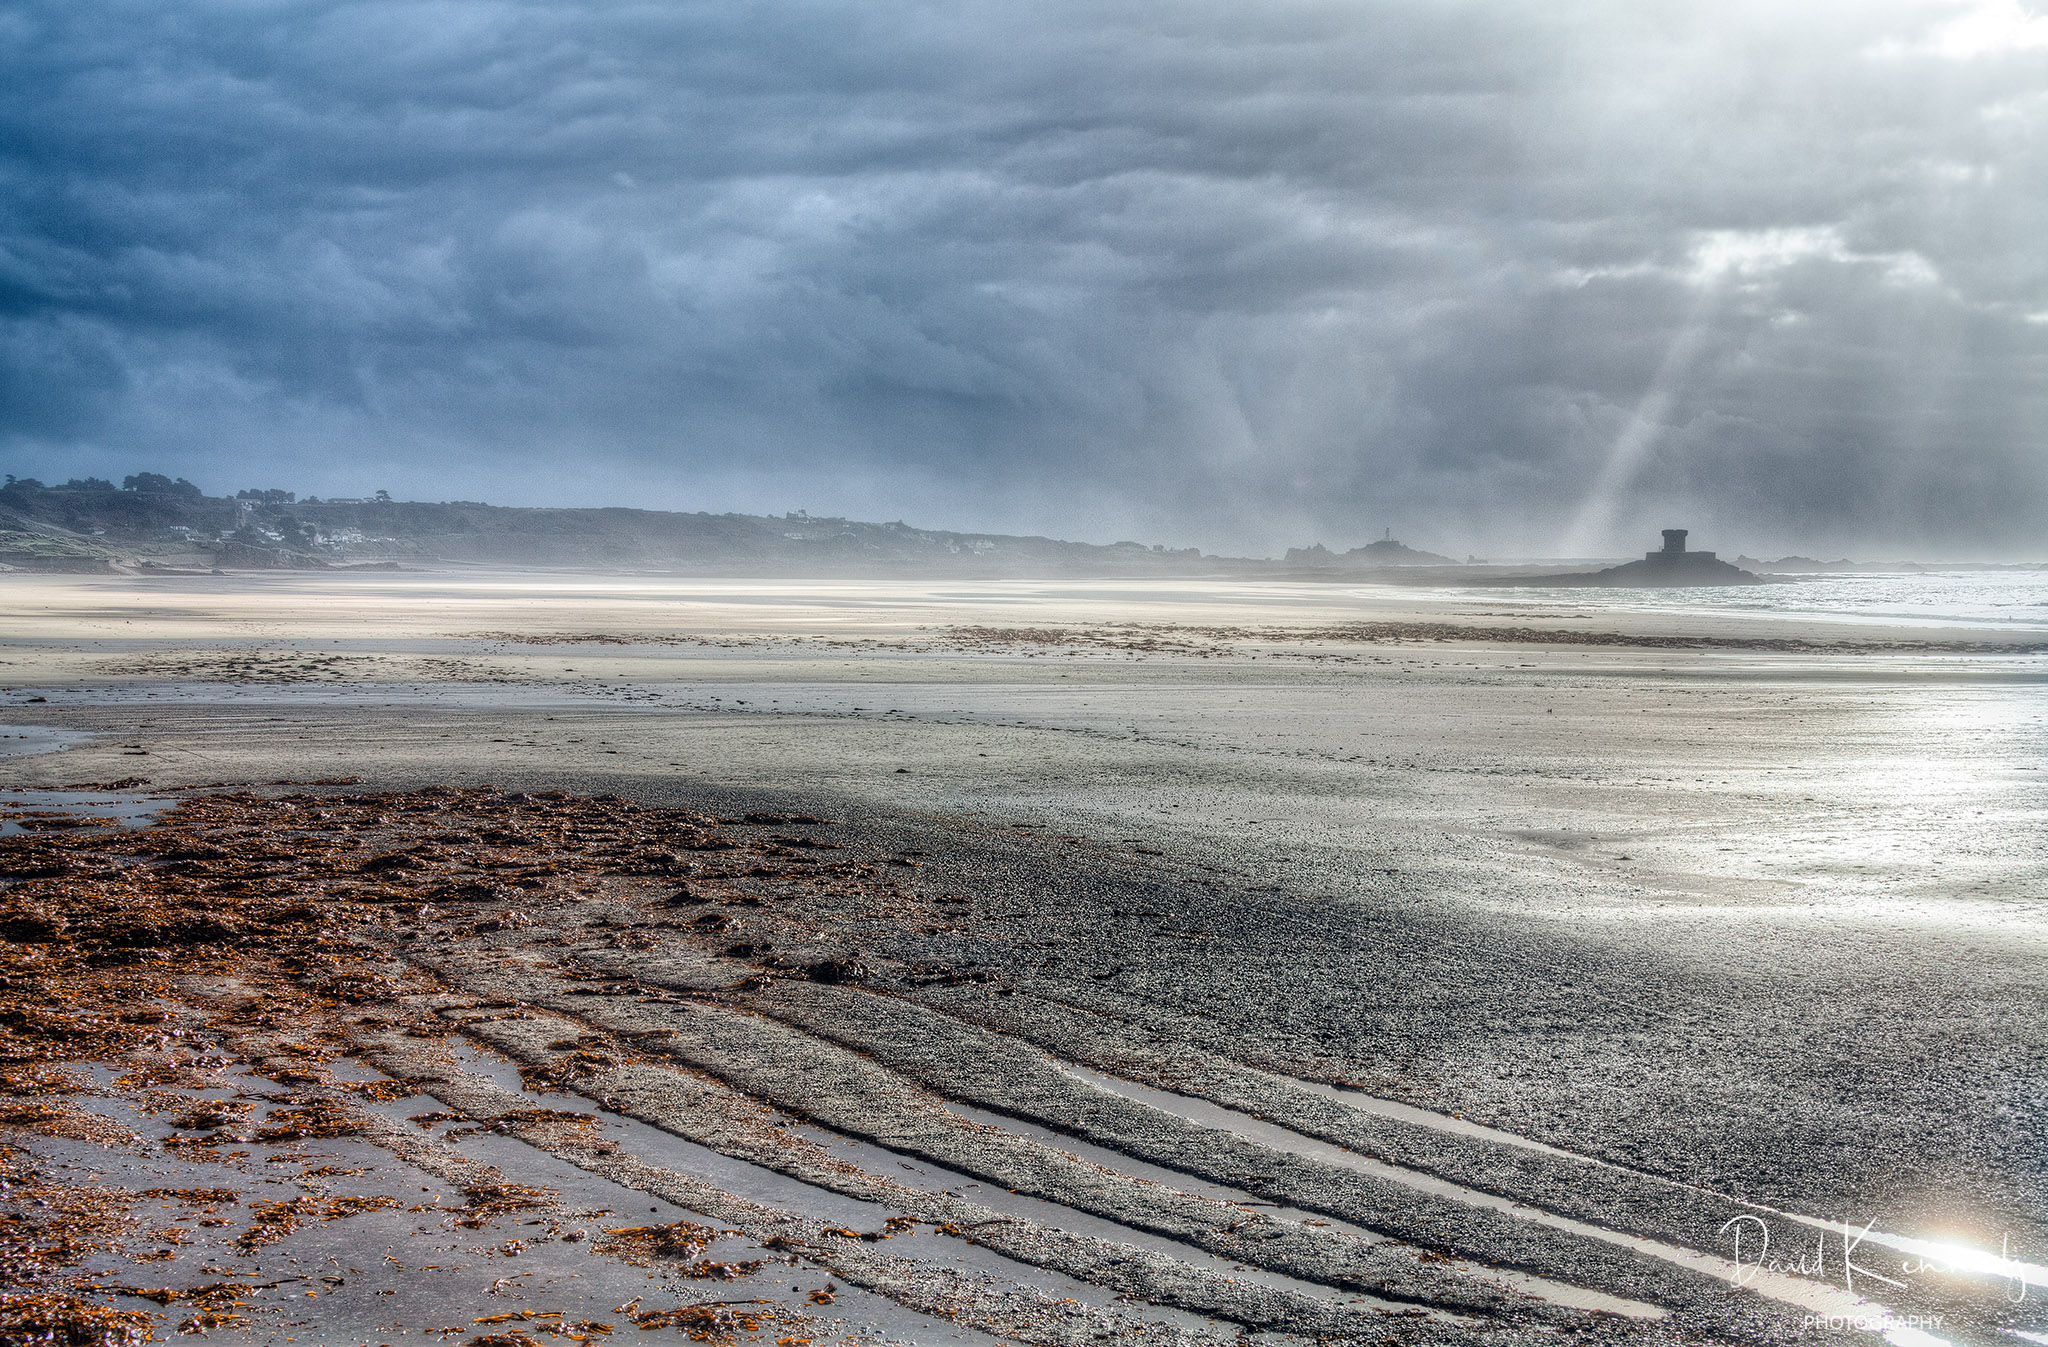 Wide view of an expanse of beach and moody sky